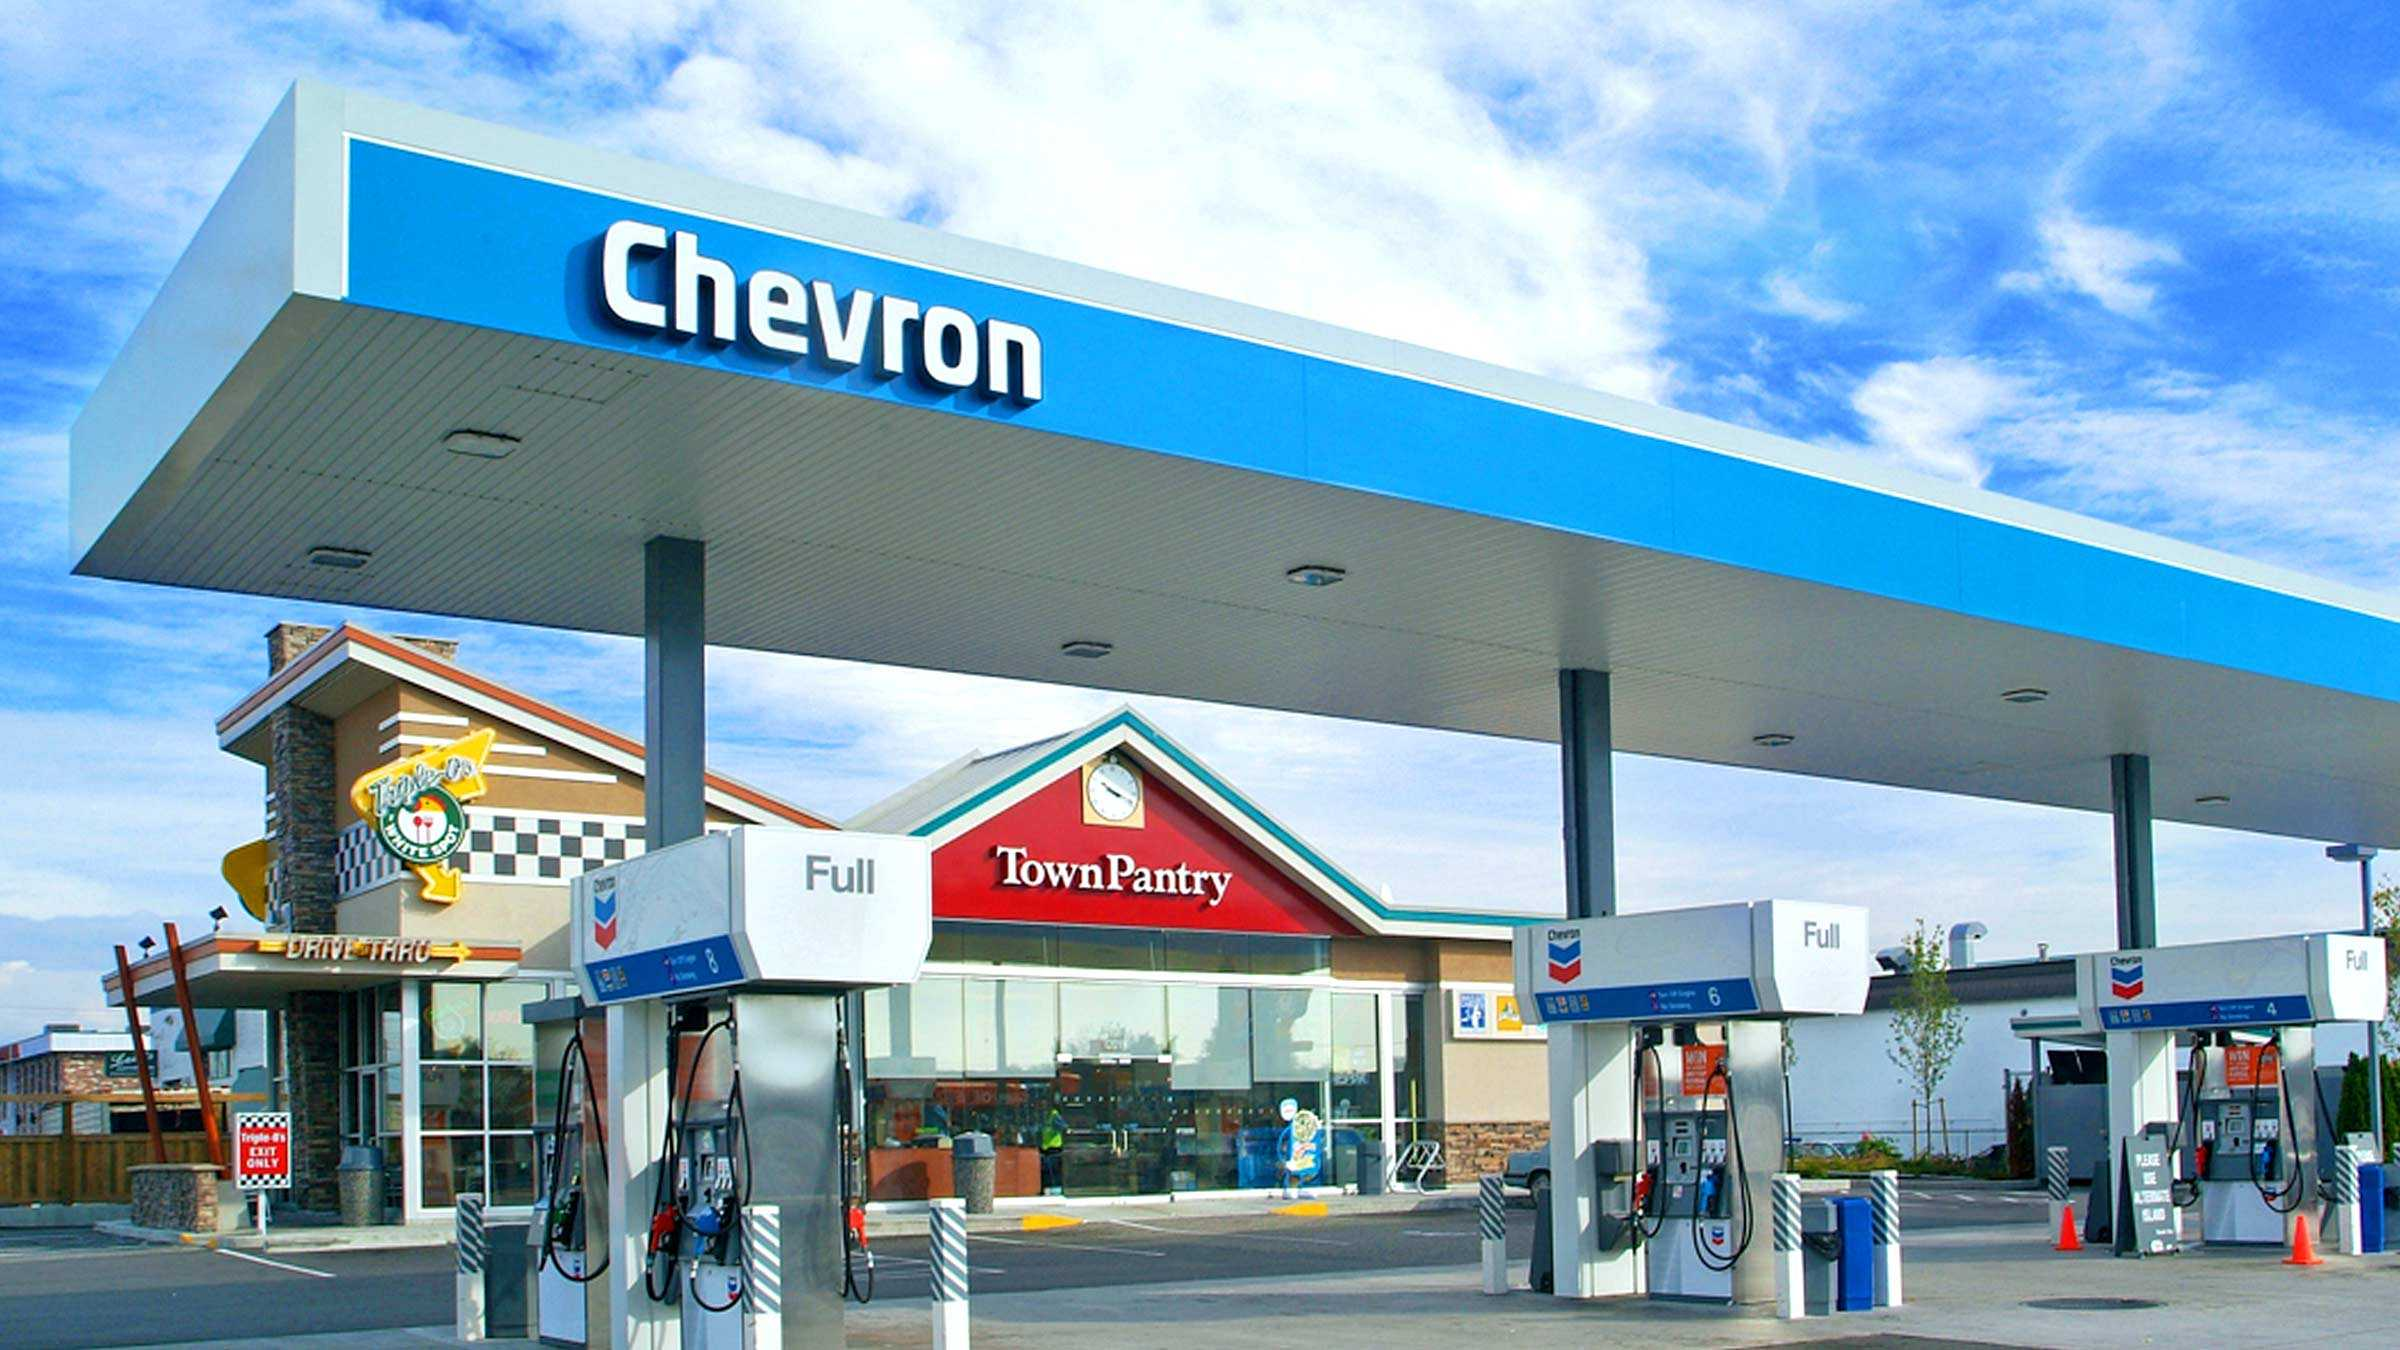 Nearest Chevron Gas Station >> Chevron Gas Station Locations {Near Me}* | United States Maps